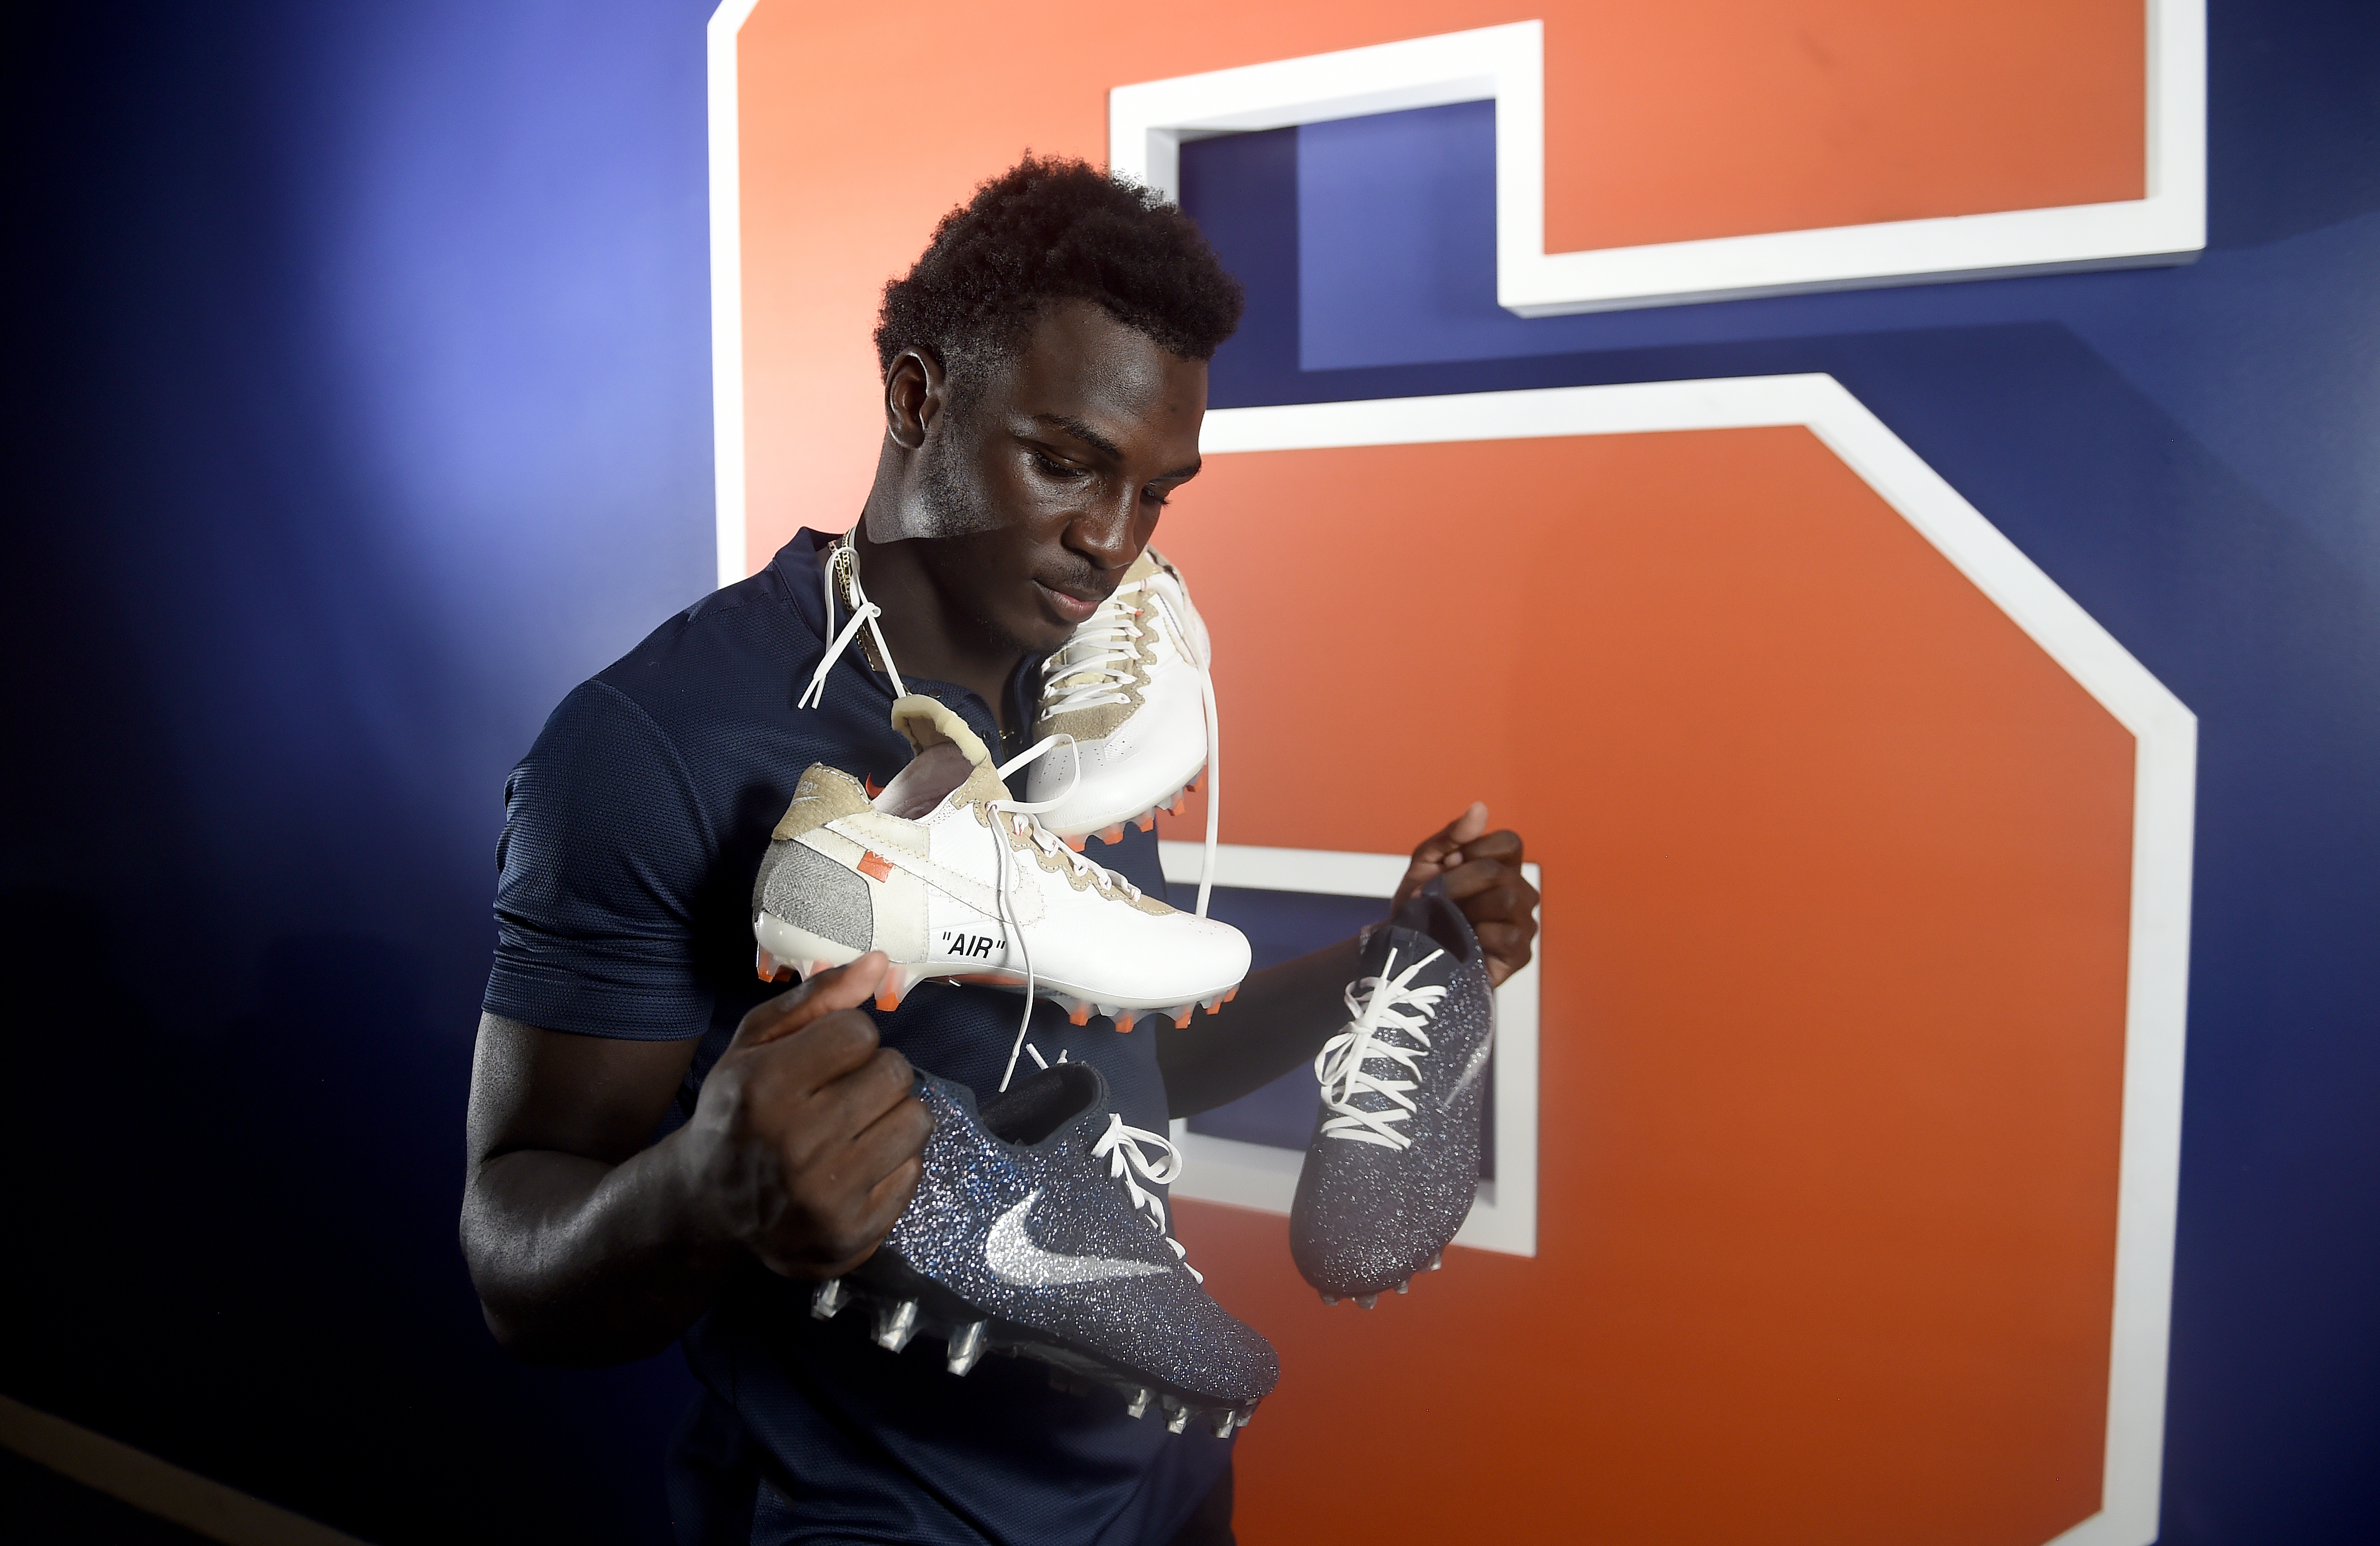 Syracuse DB Trill Williams' custom cleats started with spray paint